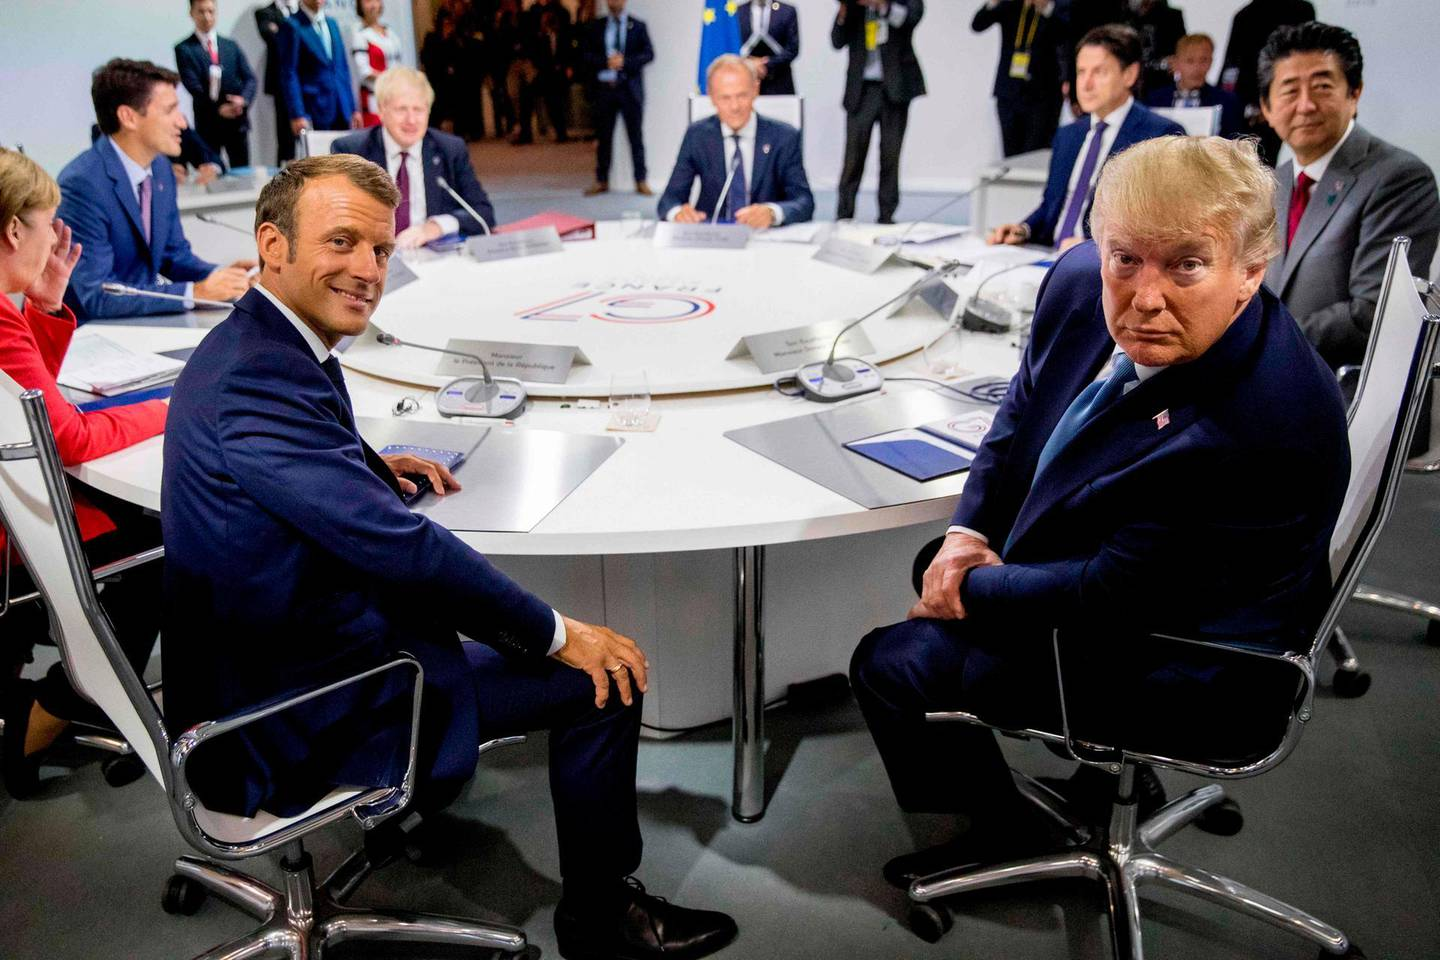 """TOPSHOT - France's President Emmanuel Macron (L) and US President Donald Trump attend  a working session on """"International Economy and Trade, and International Security Agenda"""" in Biarritz, south-west France on August 25, 2019, on the second day of the annual G7 Summit attended by the leaders of the world's seven richest democracies, Britain, Canada, France, Germany, Italy, Japan and the United States.  / AFP / POOL / Andrew Harnik"""